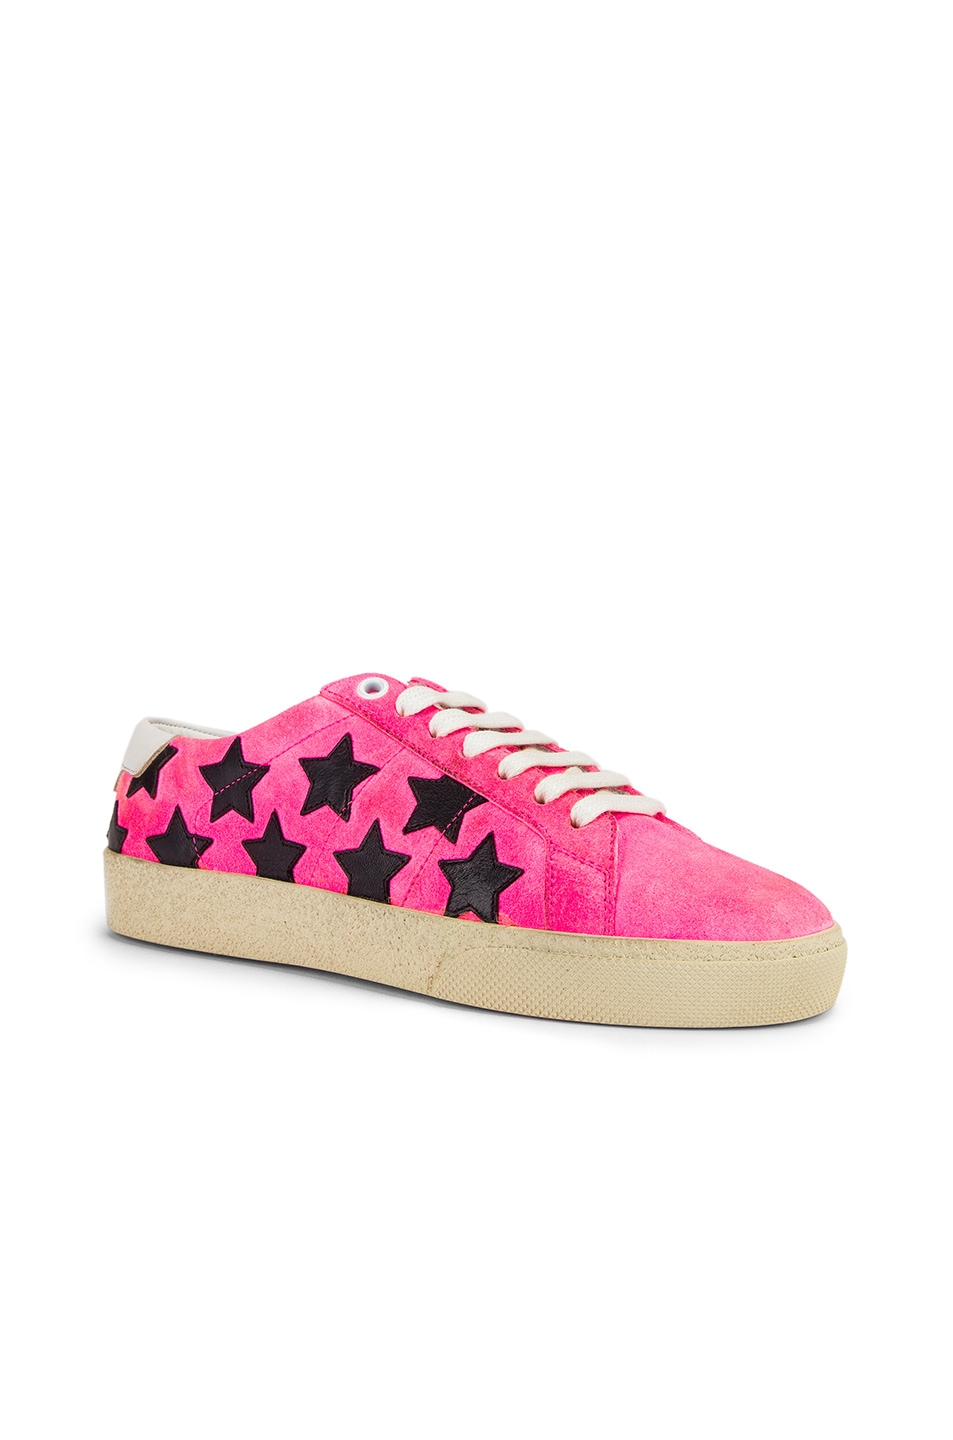 Image 2 of Saint Laurent Star Low Top Sneakers in Pink & Black